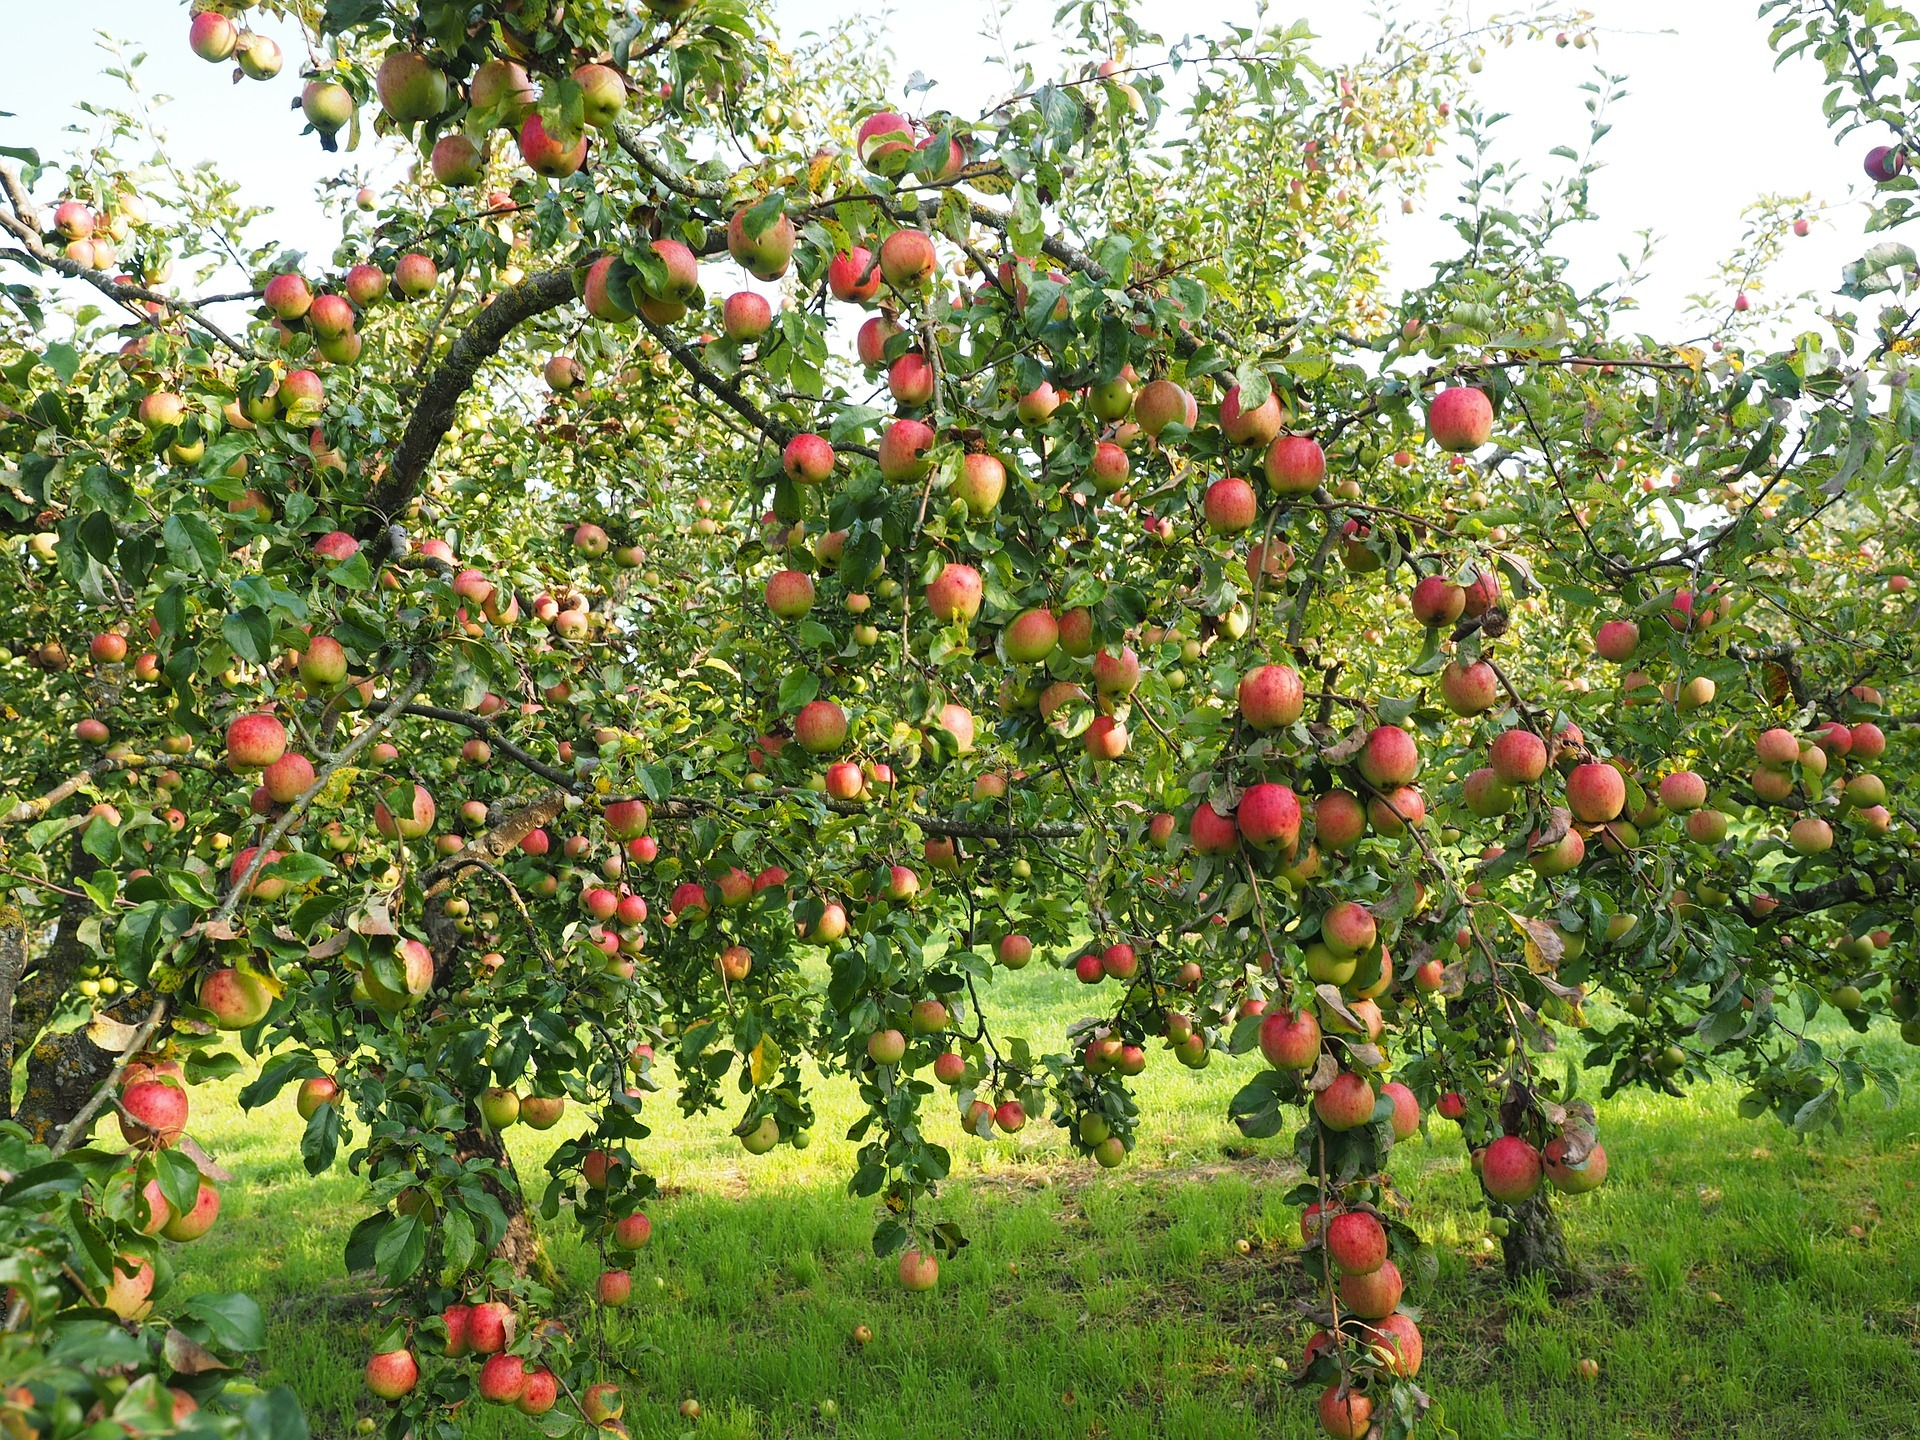 apple tree with many ripe apples